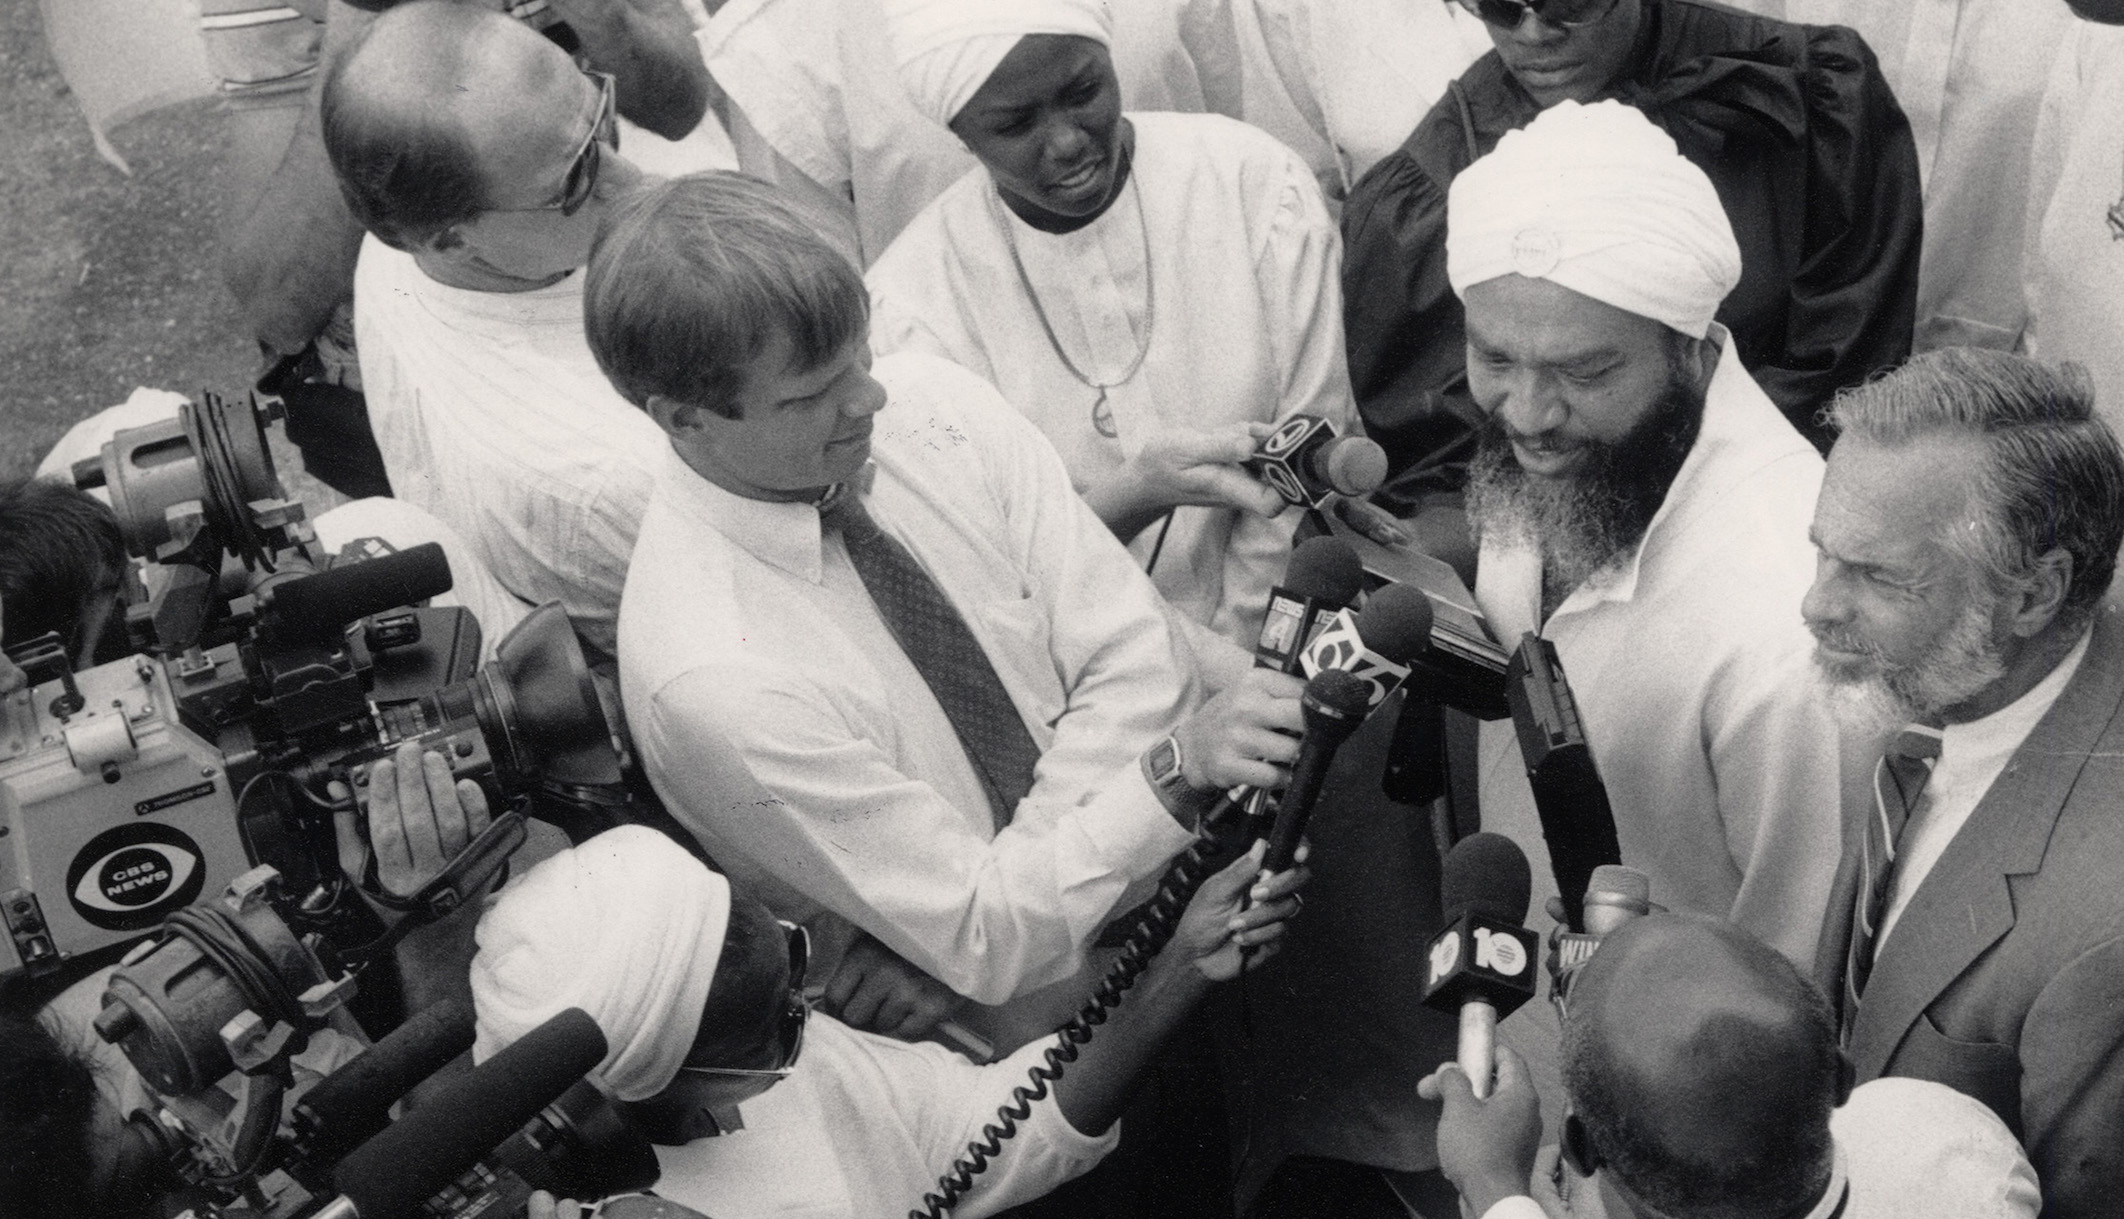 Yahweh ben Yahweh speaking to a crowd of reporters